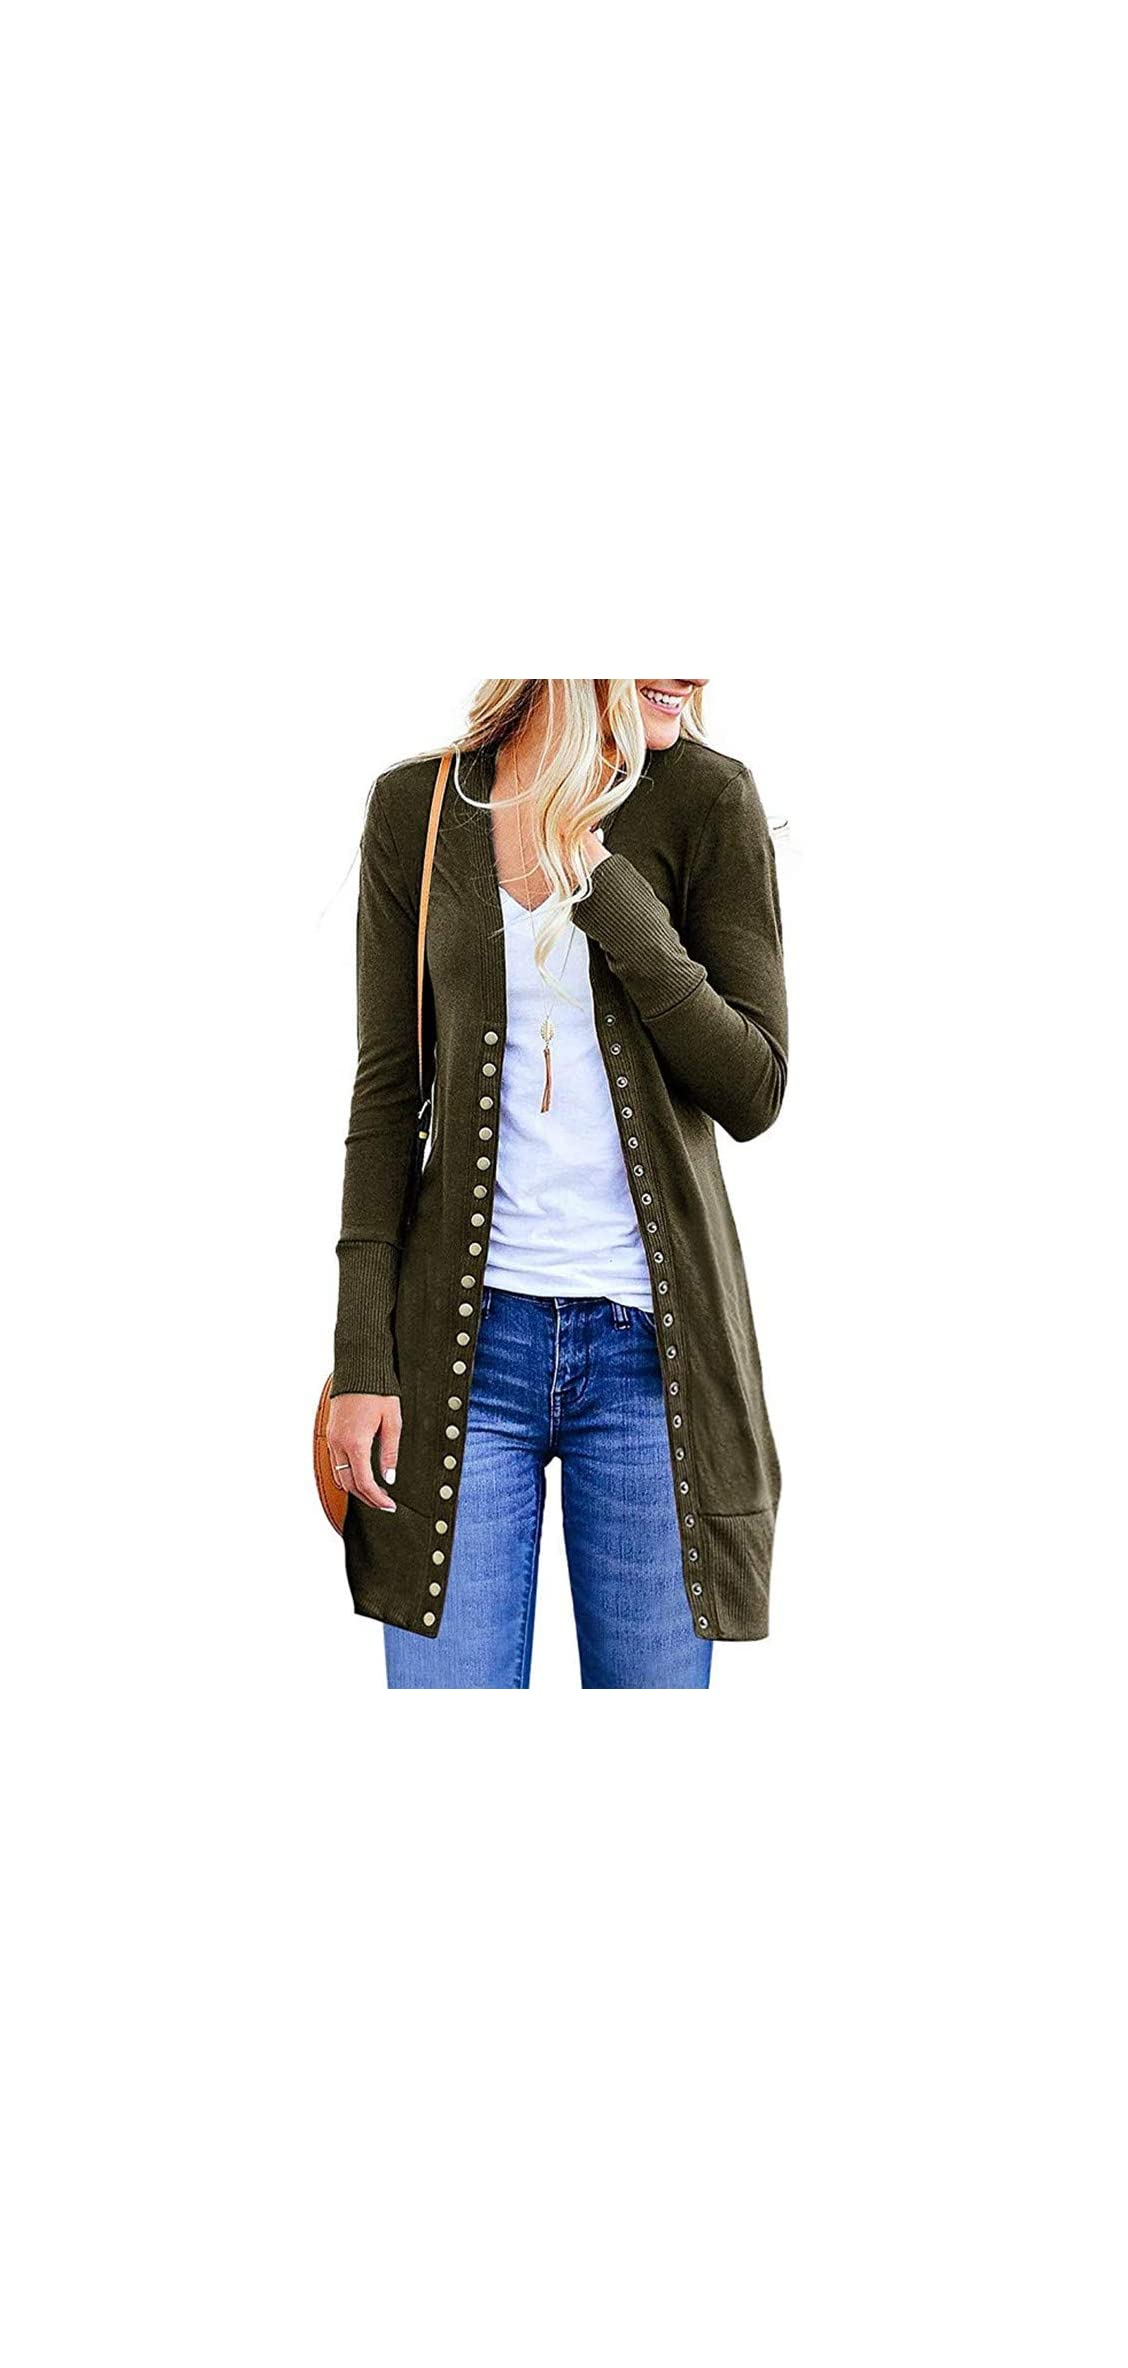 Cardigan Sweaters For Women Long Sleeve Soft Basic Down